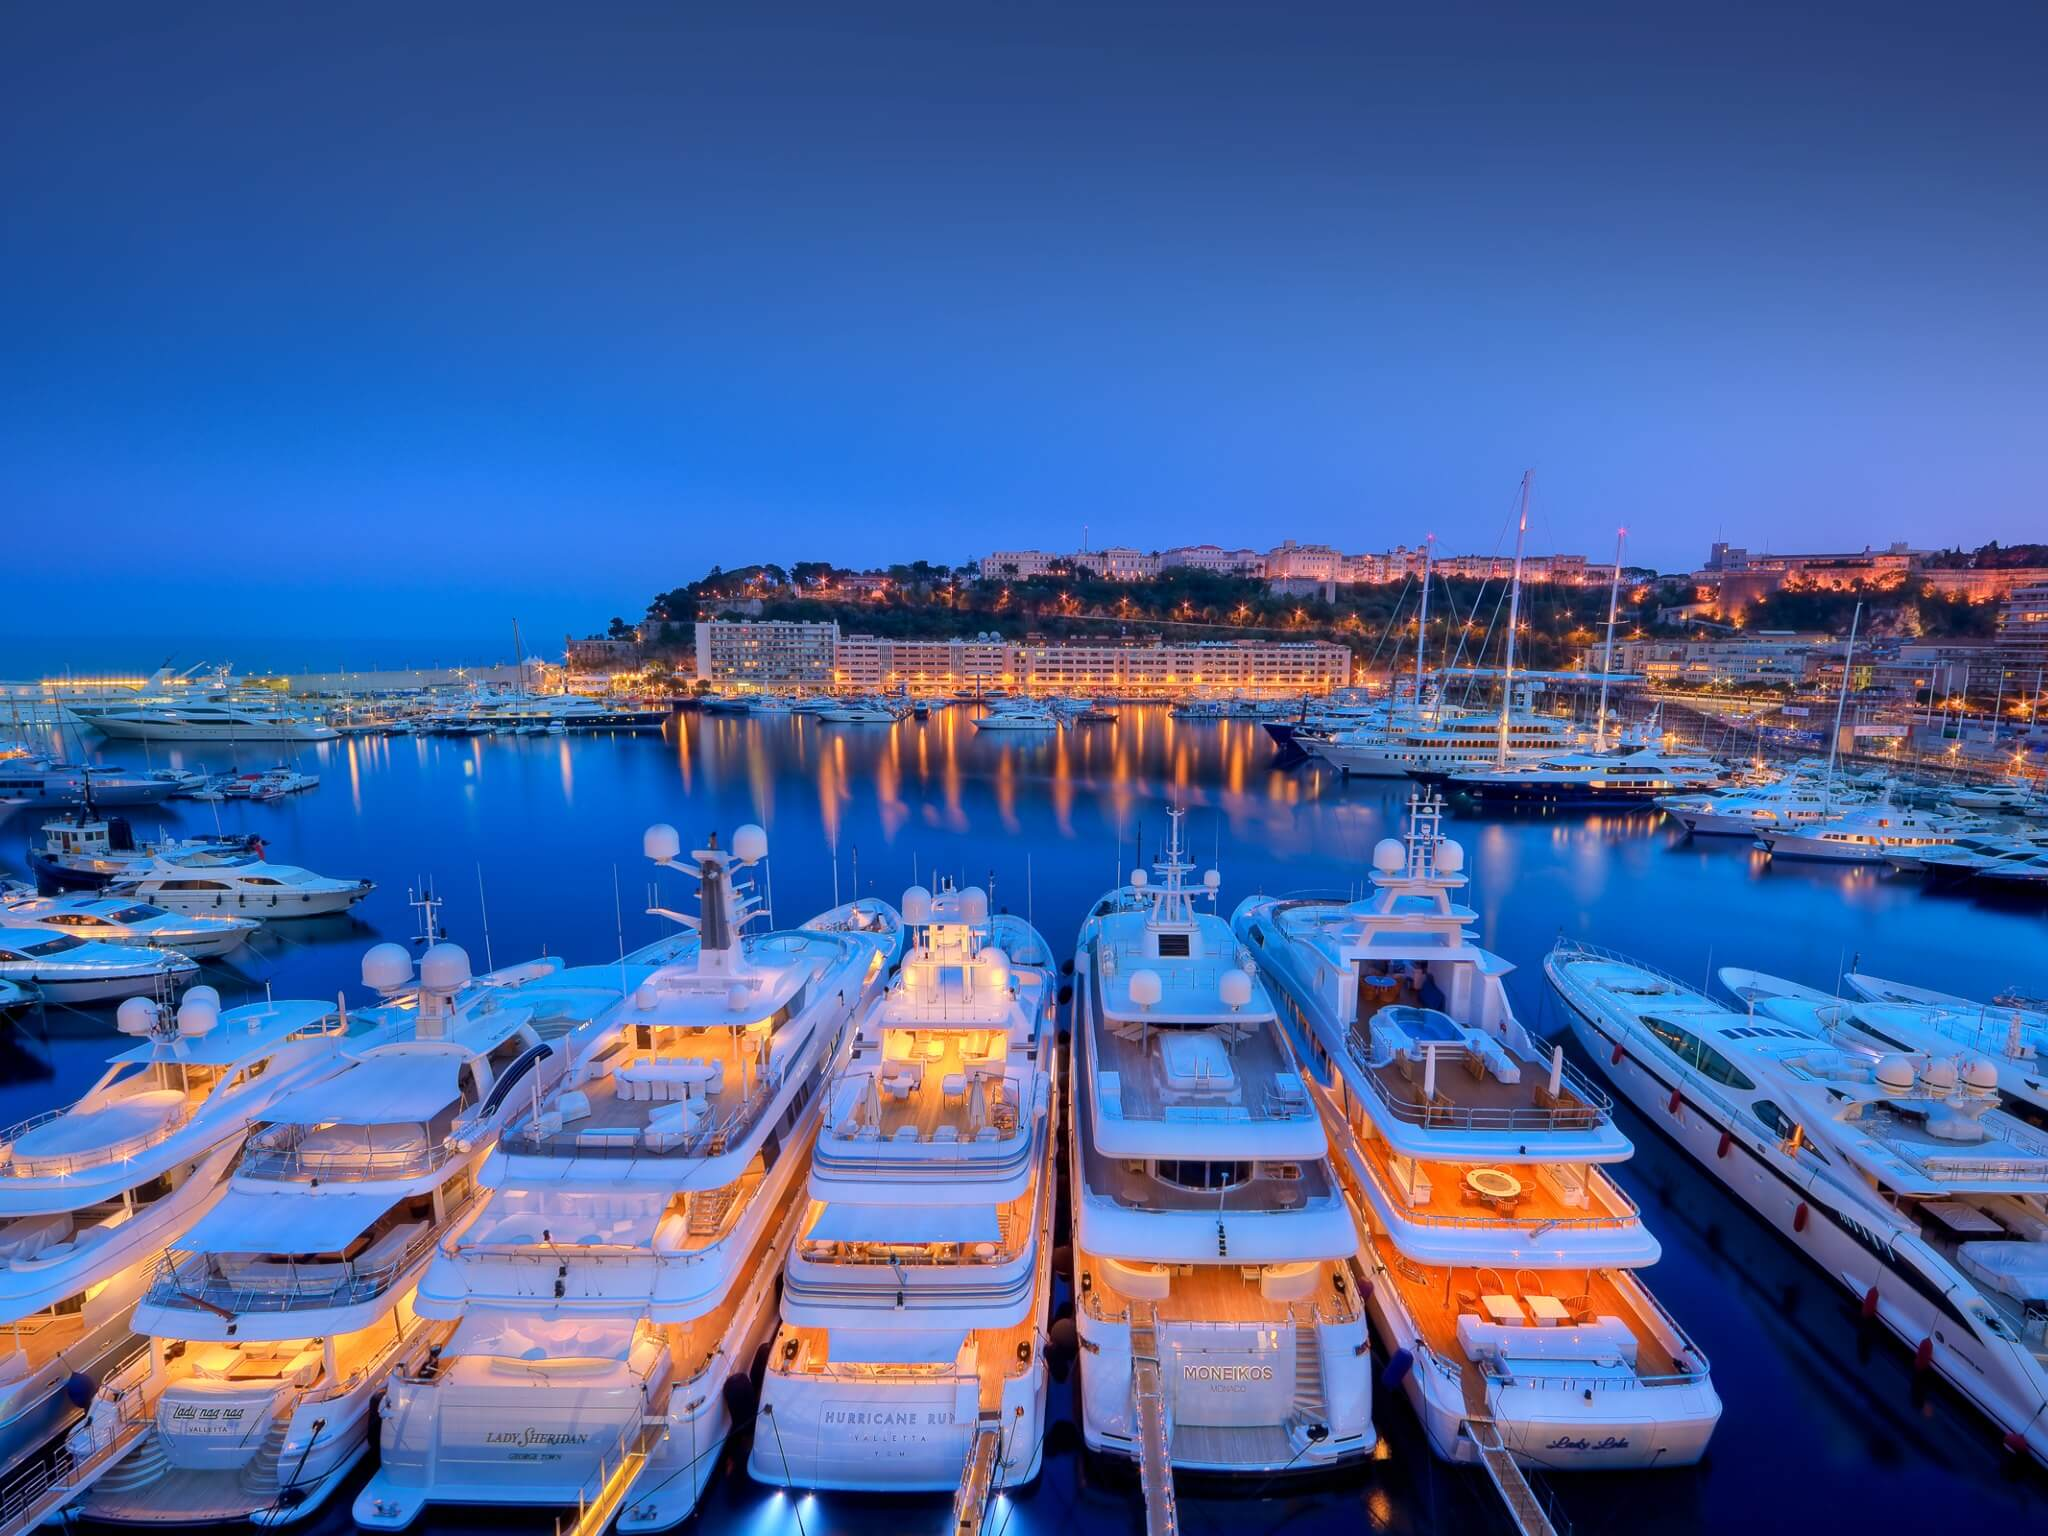 Yachts For Under 1 Million Dollars Price Tag